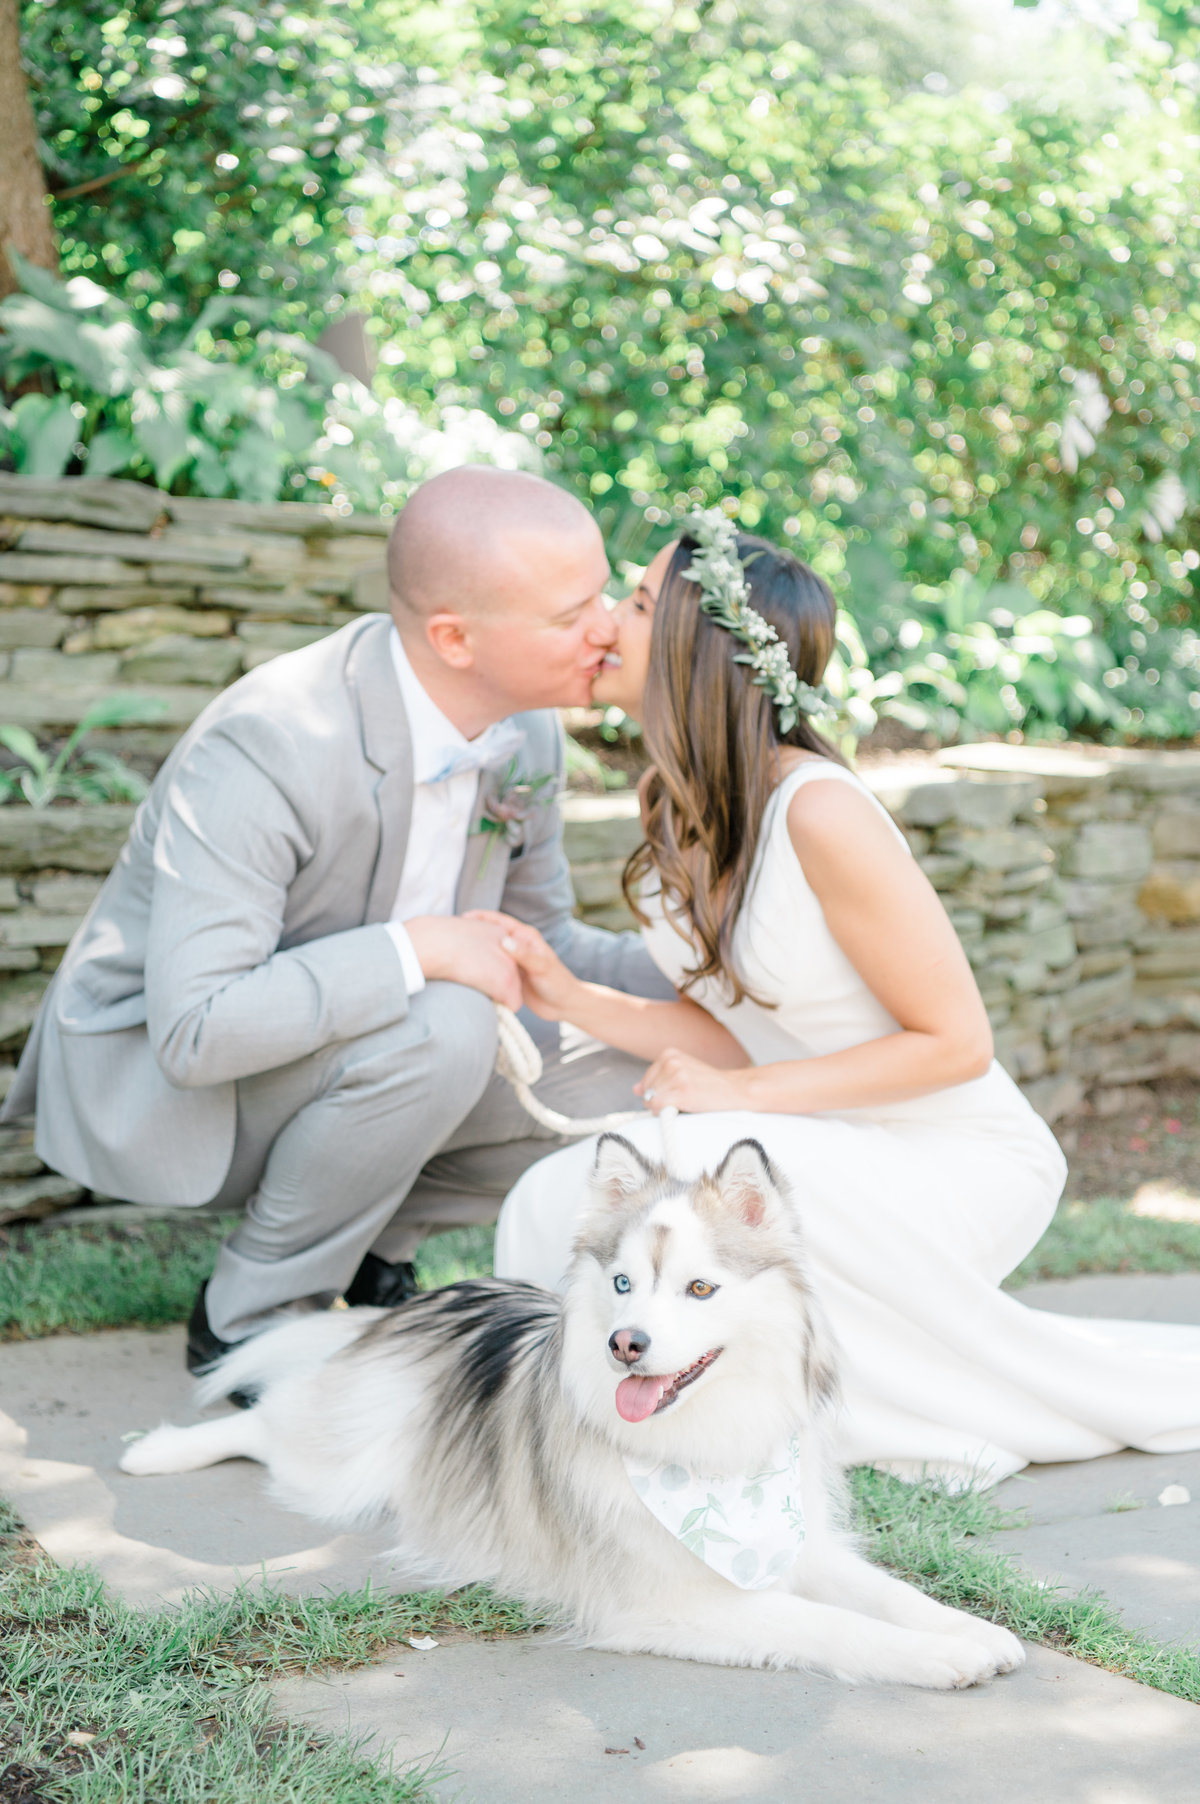 Wedding-Photographer-Near-me-NY-Bride-and-Groom-with-dog-Jennifer-Lam-Photography